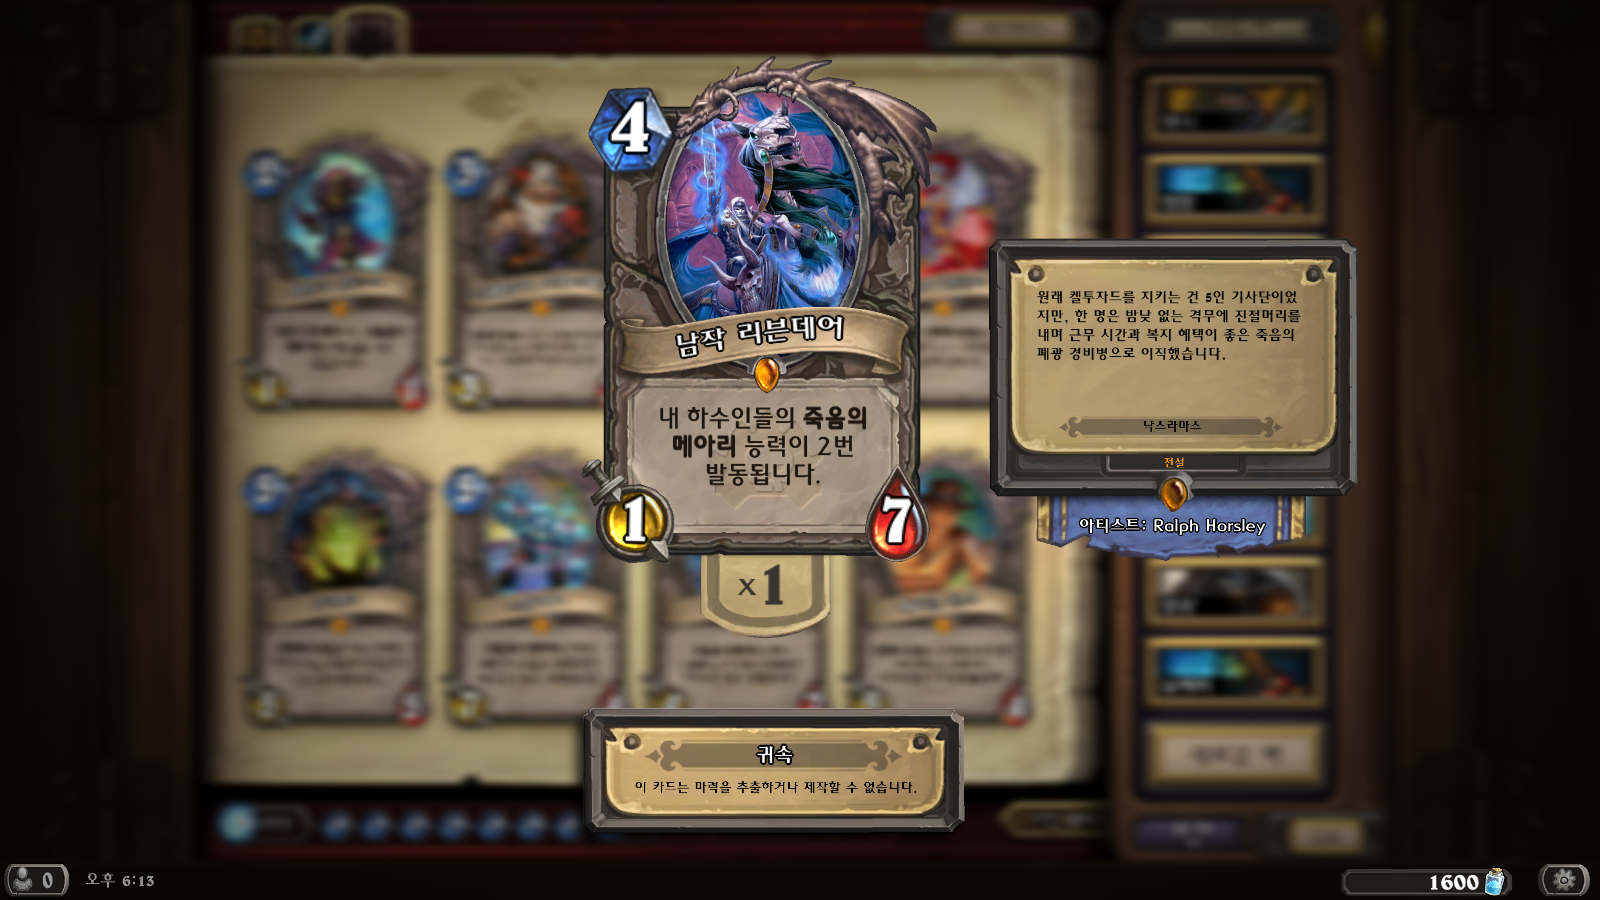 Hearthstone_Screenshot_9.14.2014.18.13.04.png